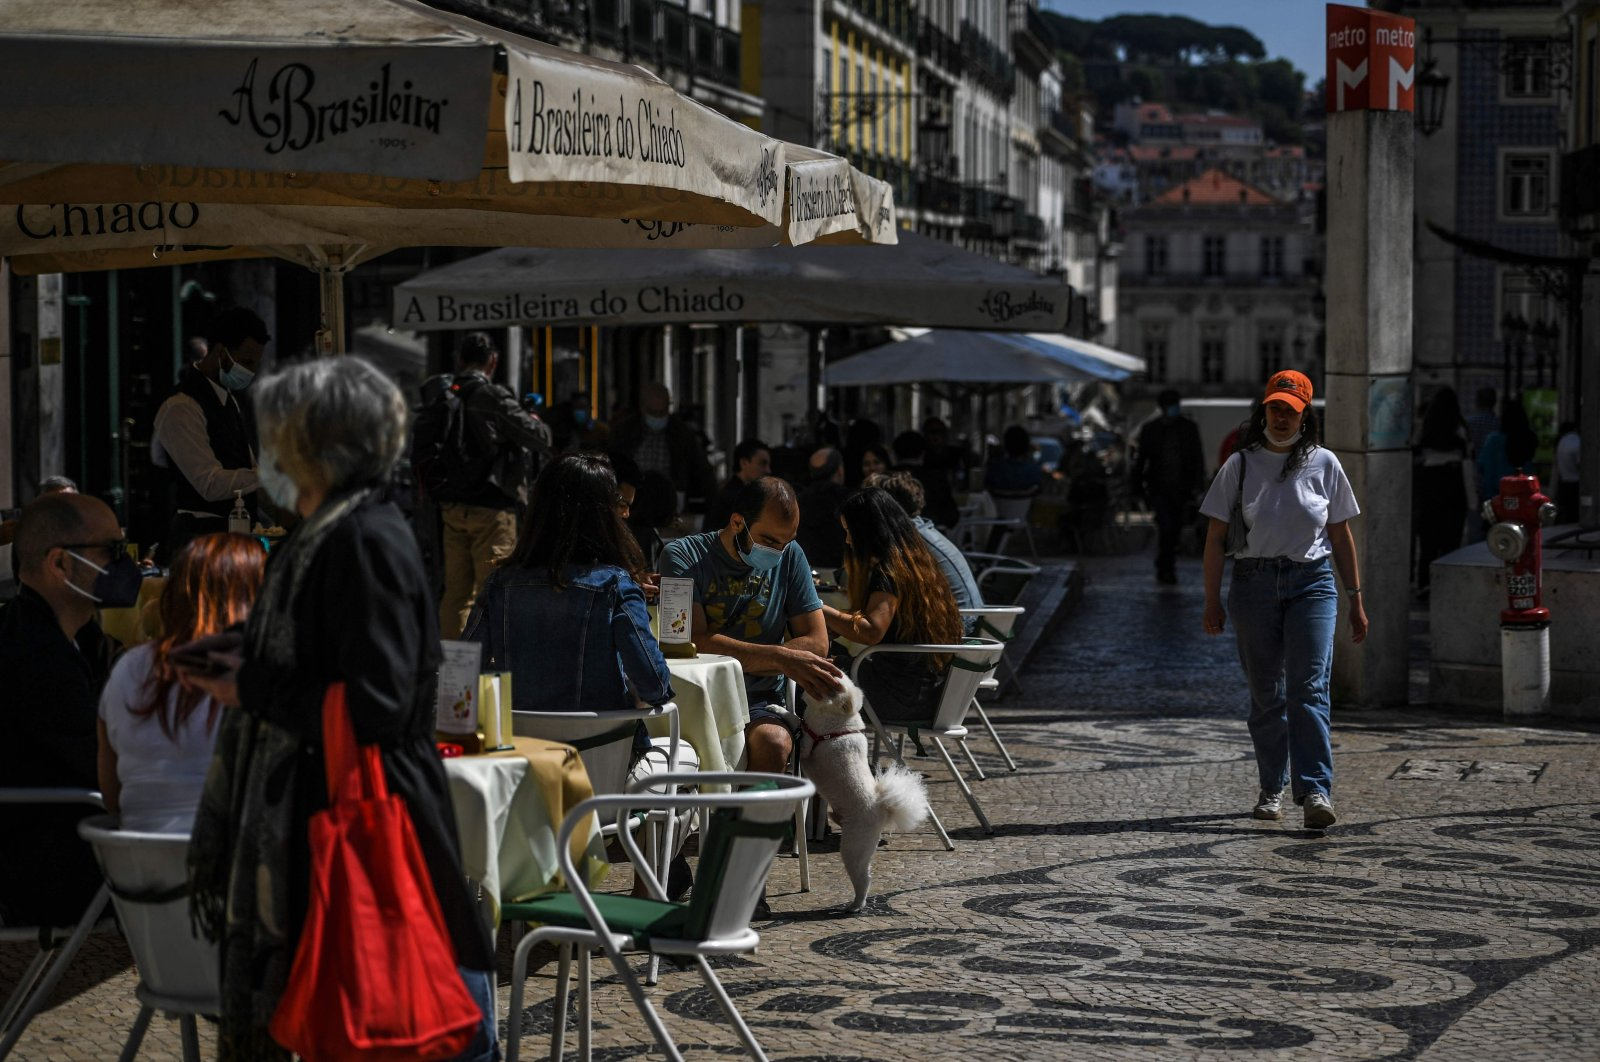 People sit at a cafe terrace after the Portuguese government eased coronavirus restrictions, in the Chiado district of Lisbon, Portugal, April 5, 2021. (AFP)